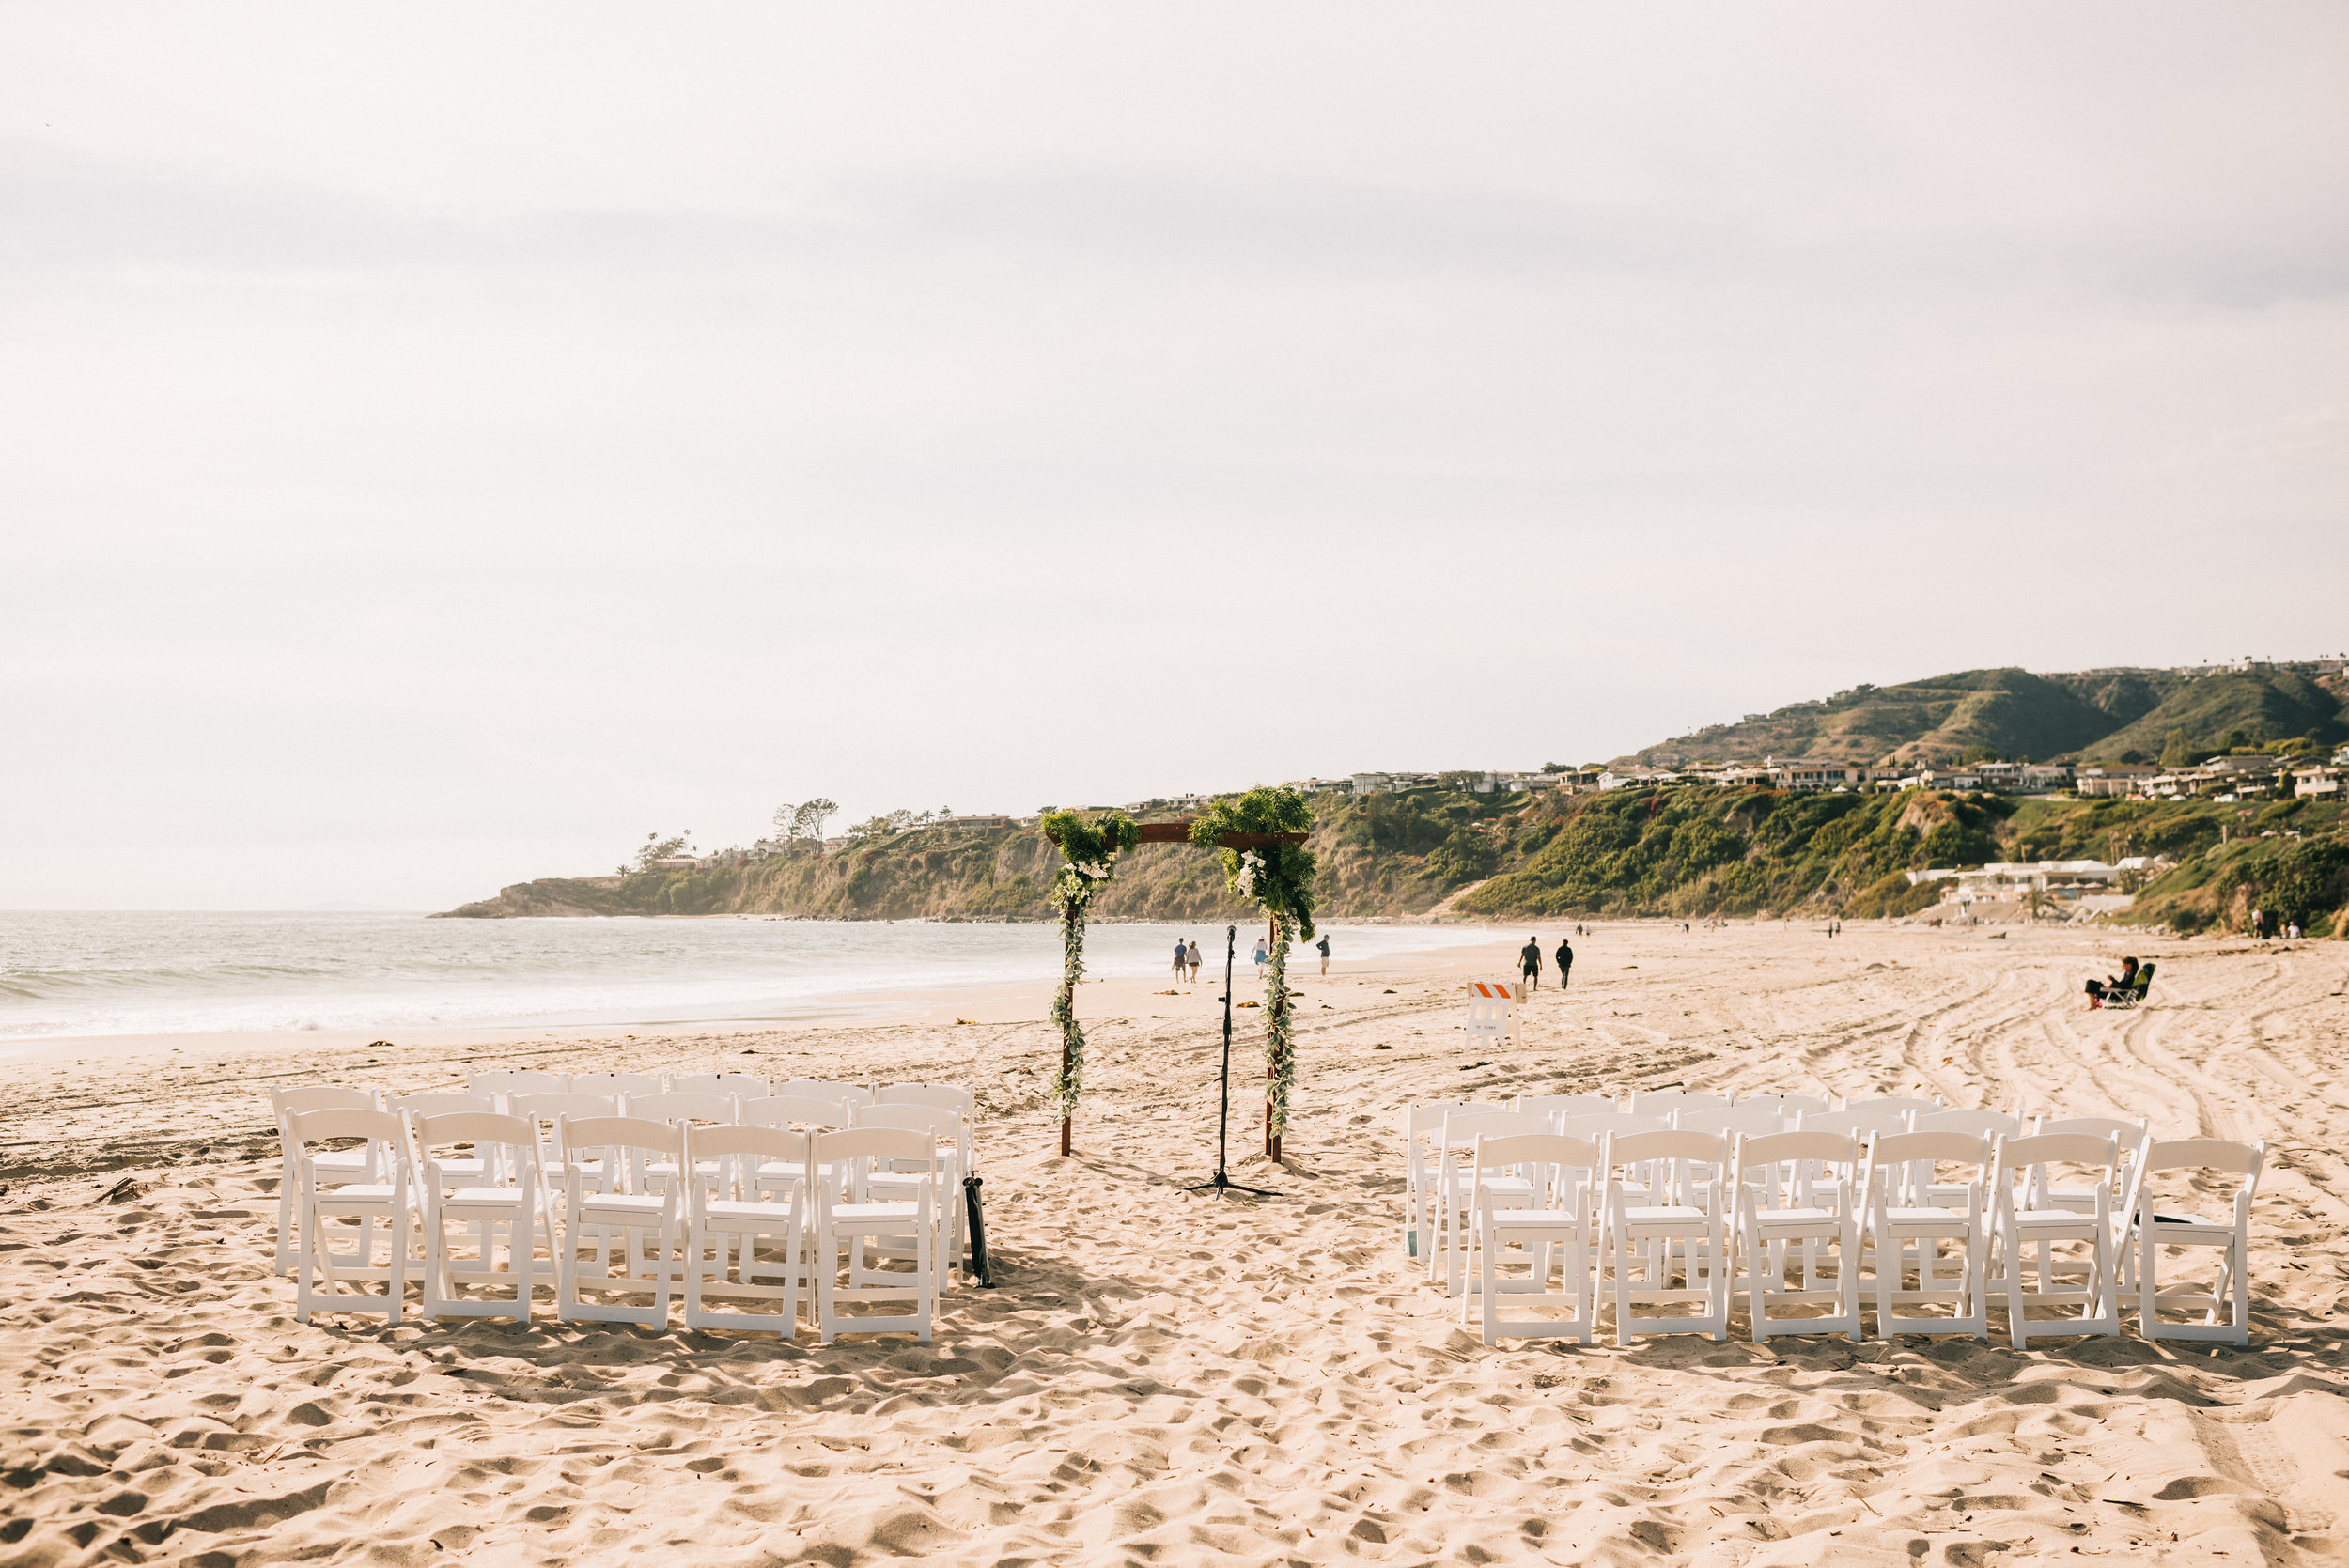 southern california laguna beach salt creek beach los angeles socal boho bay area akland san francisco engagement wedding nontraditional fun creative eclectic photographer magic-366.jpg